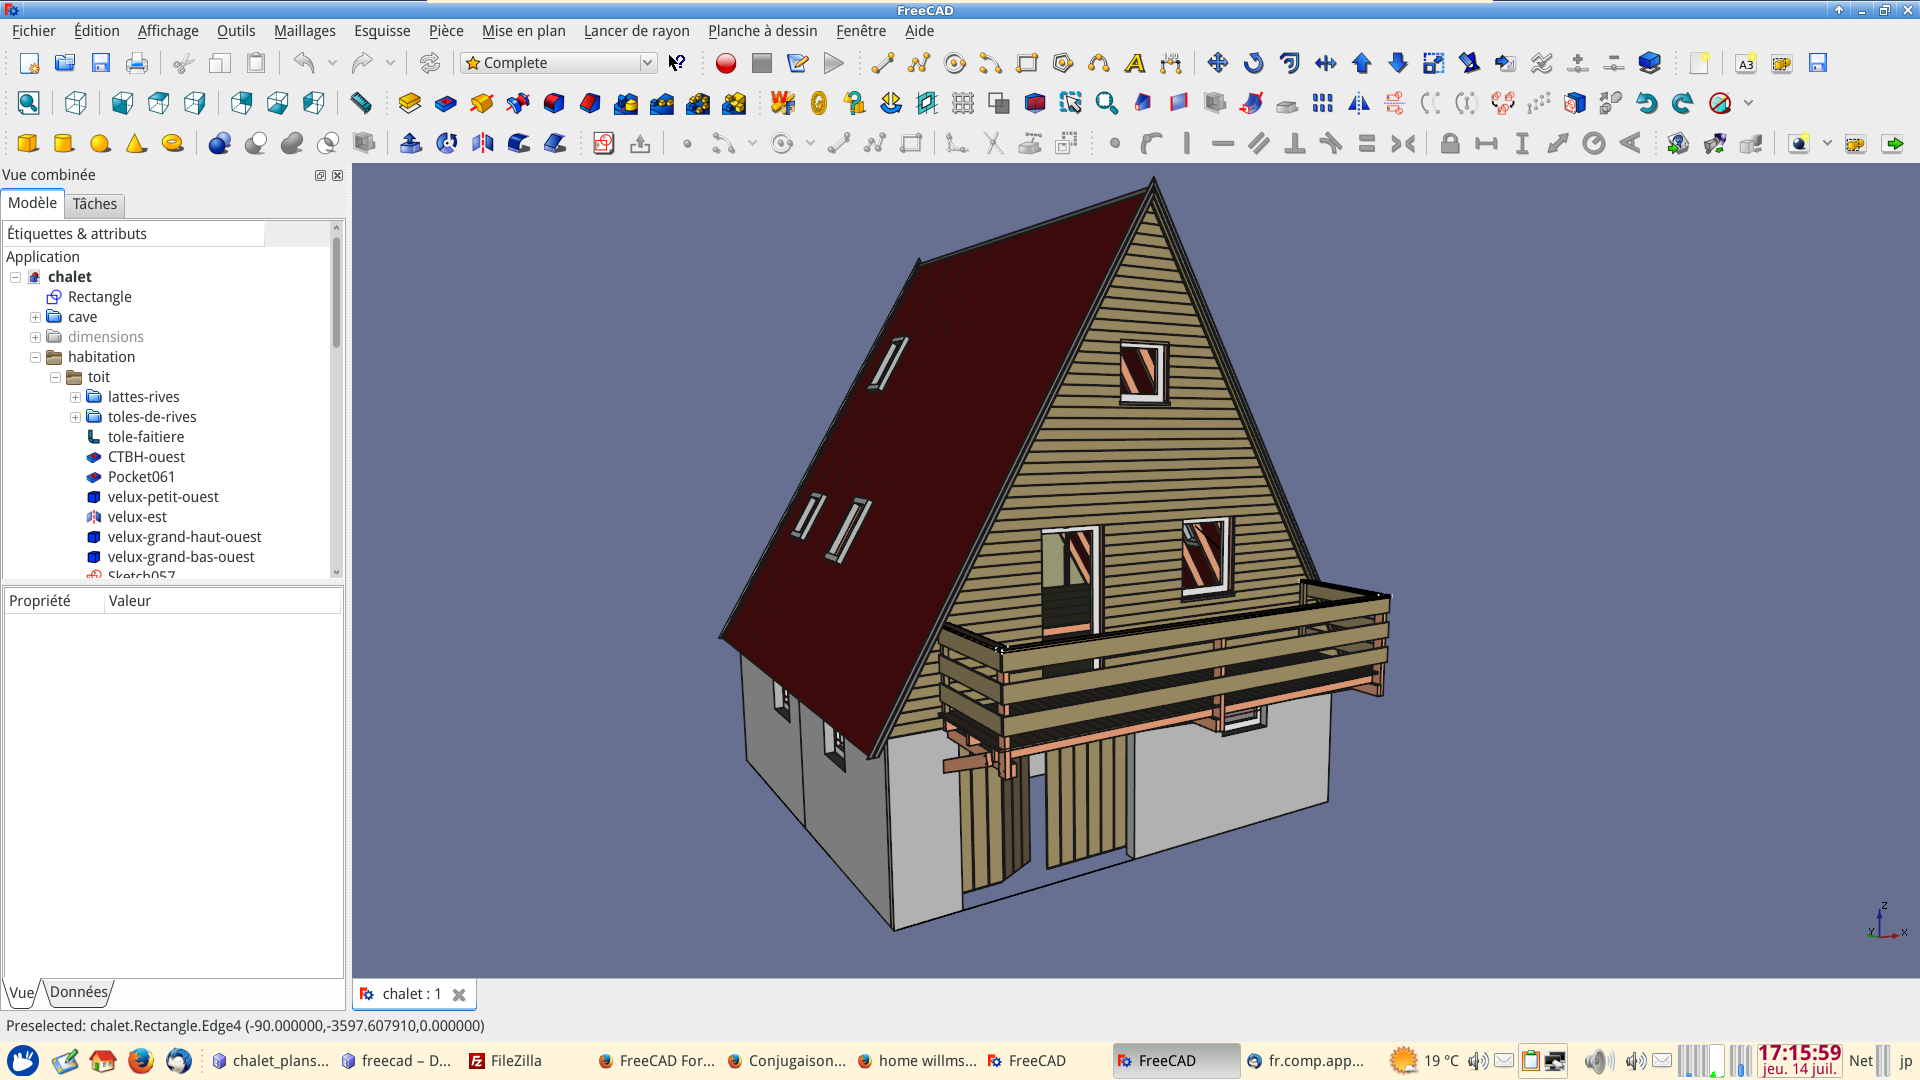 FreeCAD_chalet.png